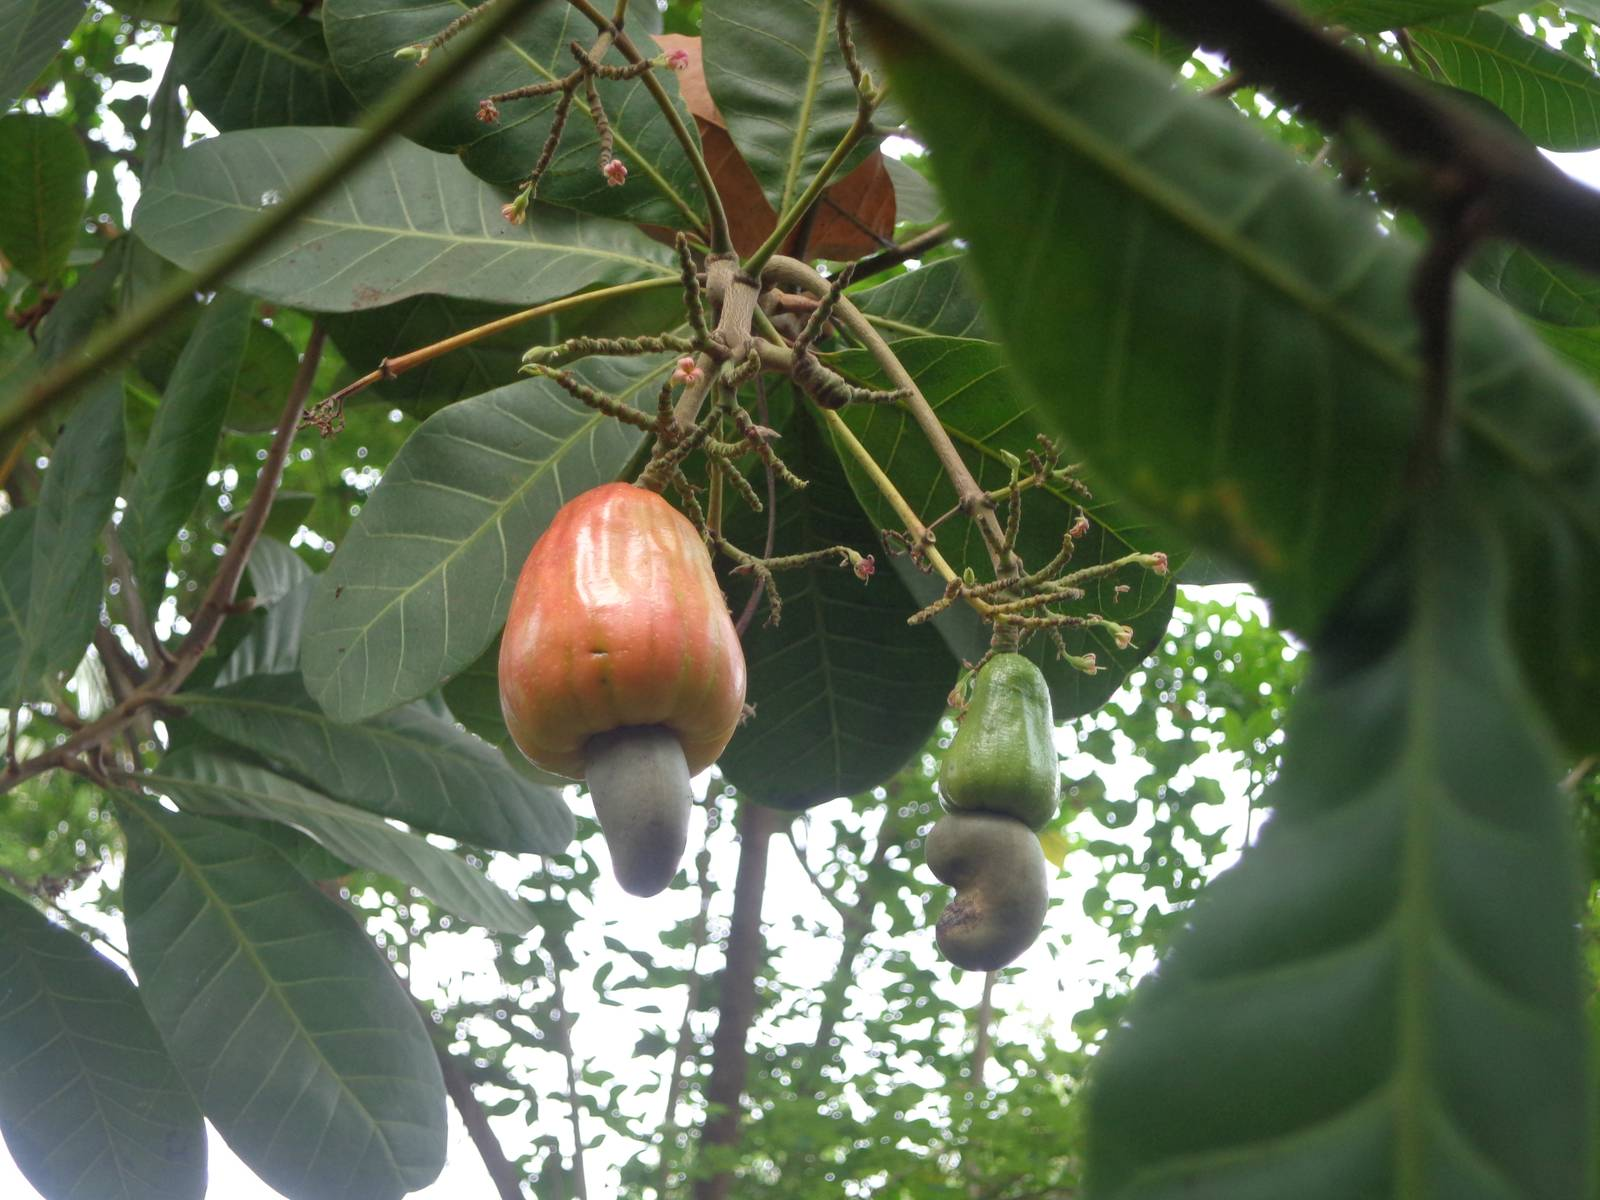 Right in front of our room there was a cashew plant. The cashew apple has a smell that is a milder variant of the Strawberry flavour of Twinings Tea that I have regularly at office.